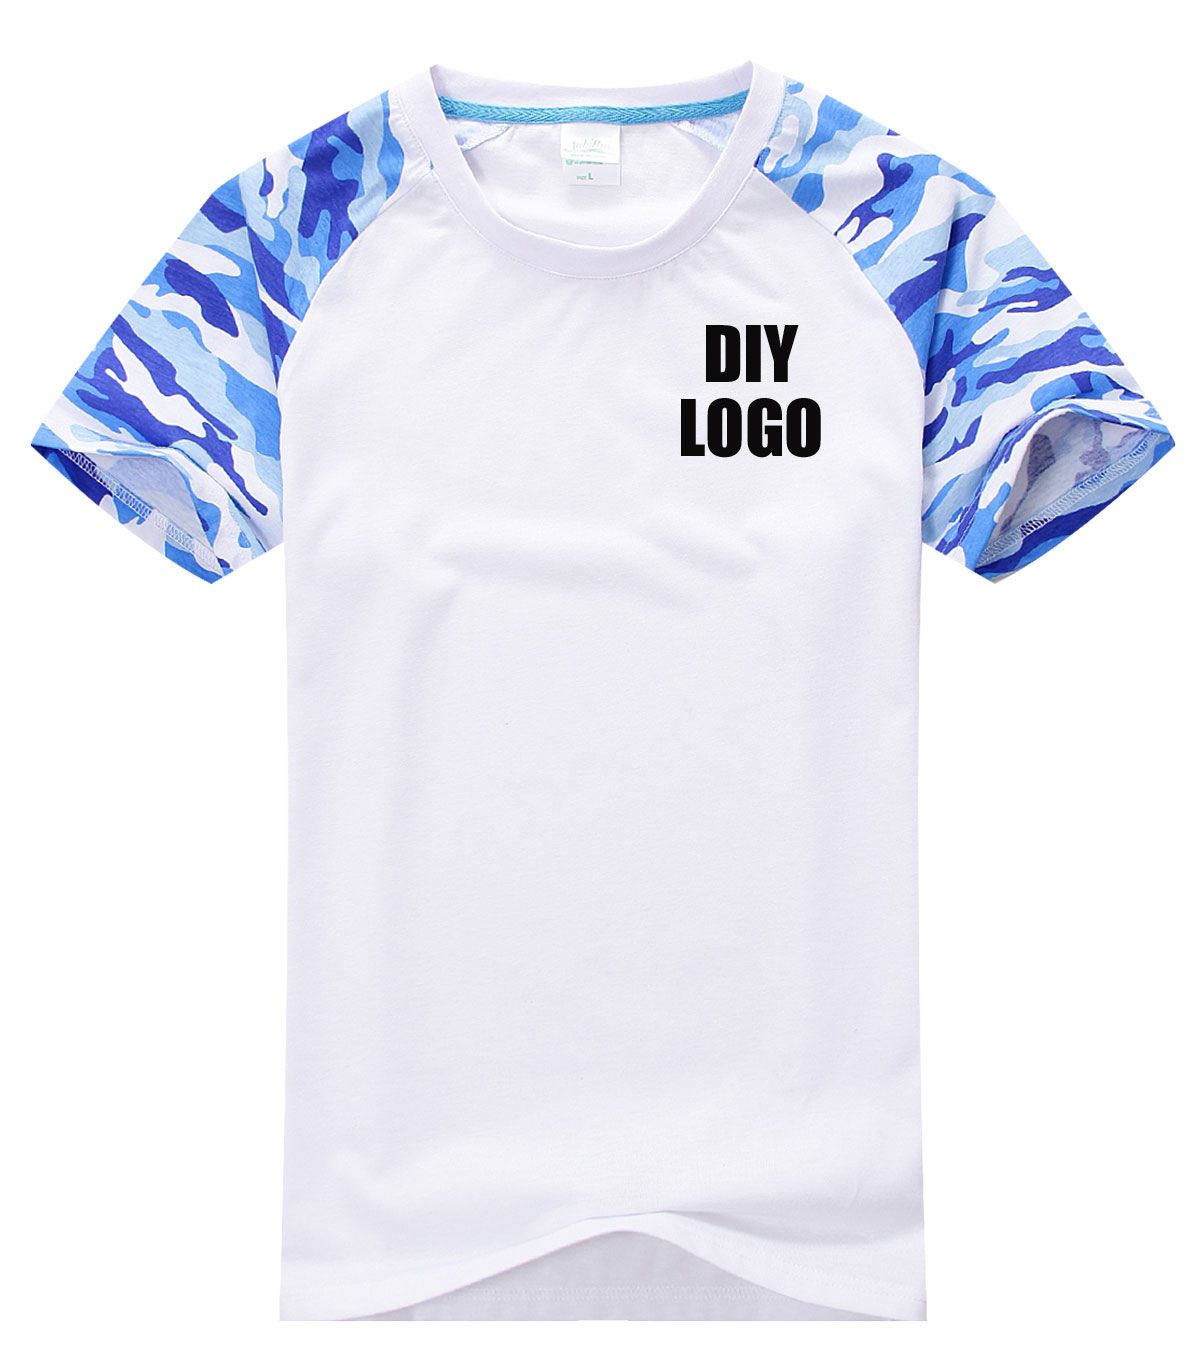 Create t shirts online cheap custom shirt for Customize my own t shirts for cheap